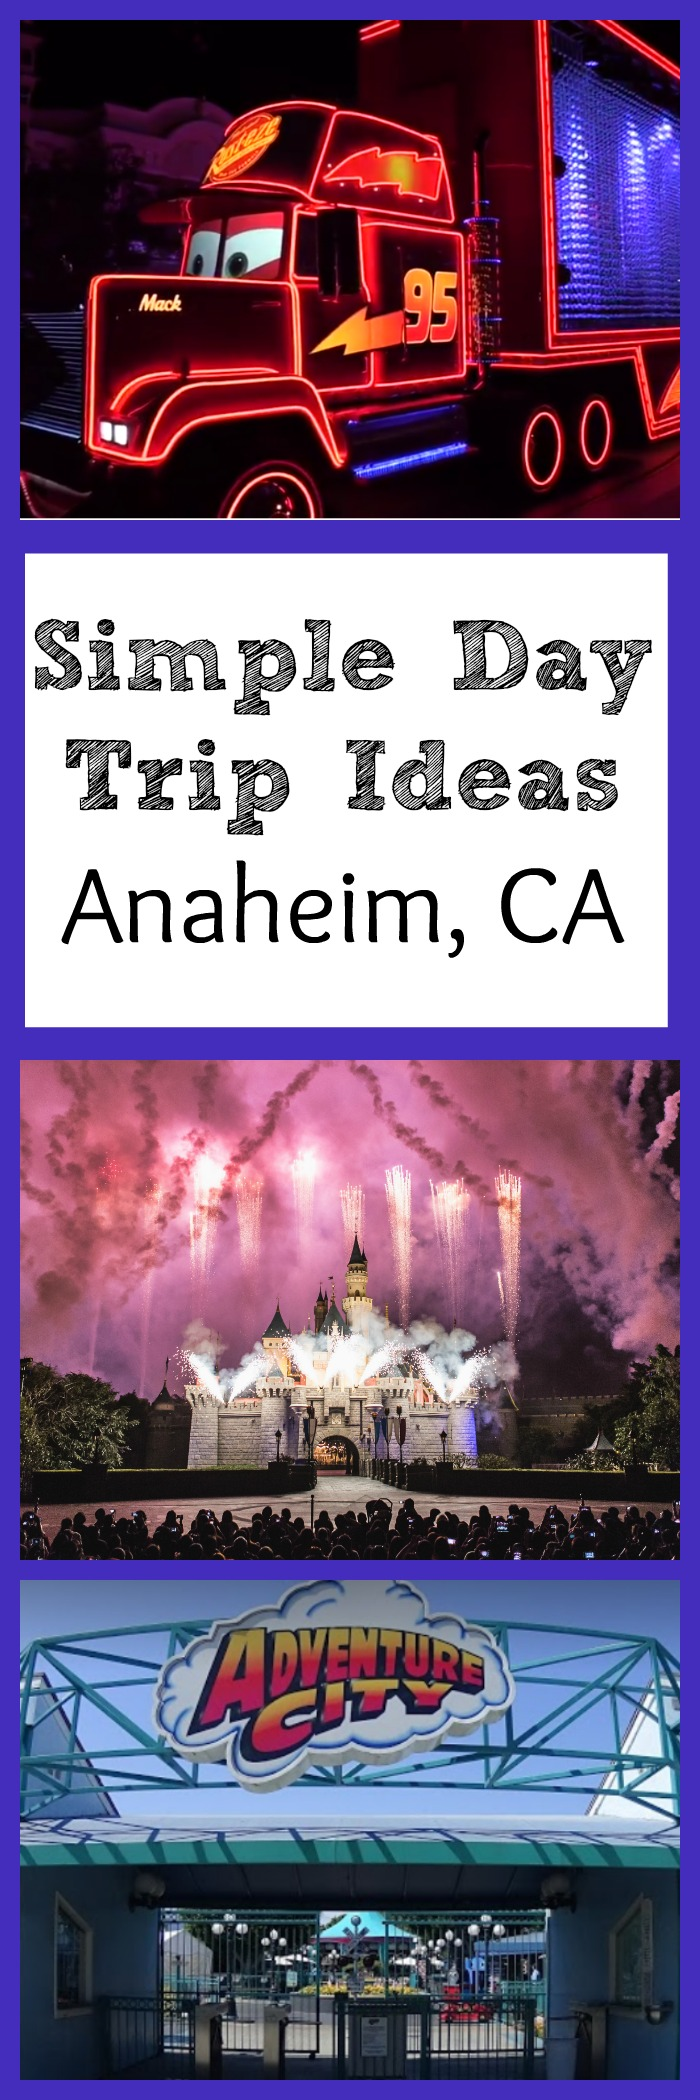 Looking for Simple Day Trip Ideas Near Anaheim, CA? Living in California has many benefits, not to mention beautiful weather to allow day trips to Anaheim.